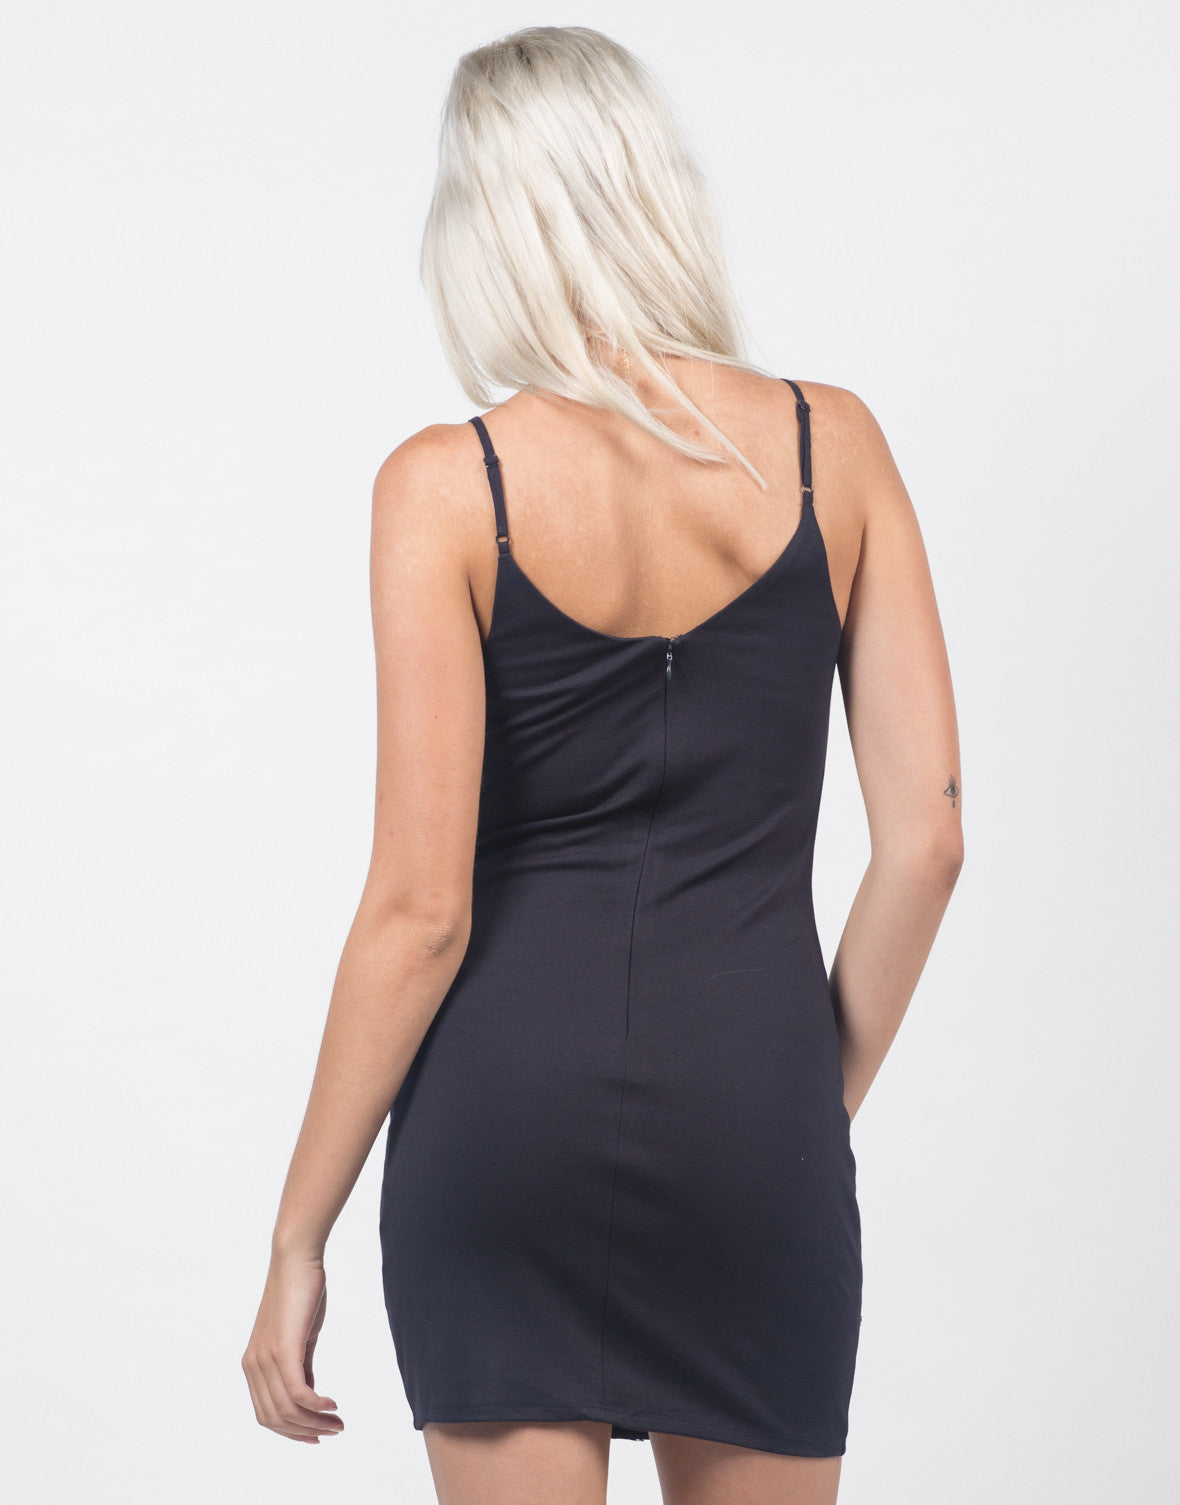 Back View of Lacey Bodycon Dress